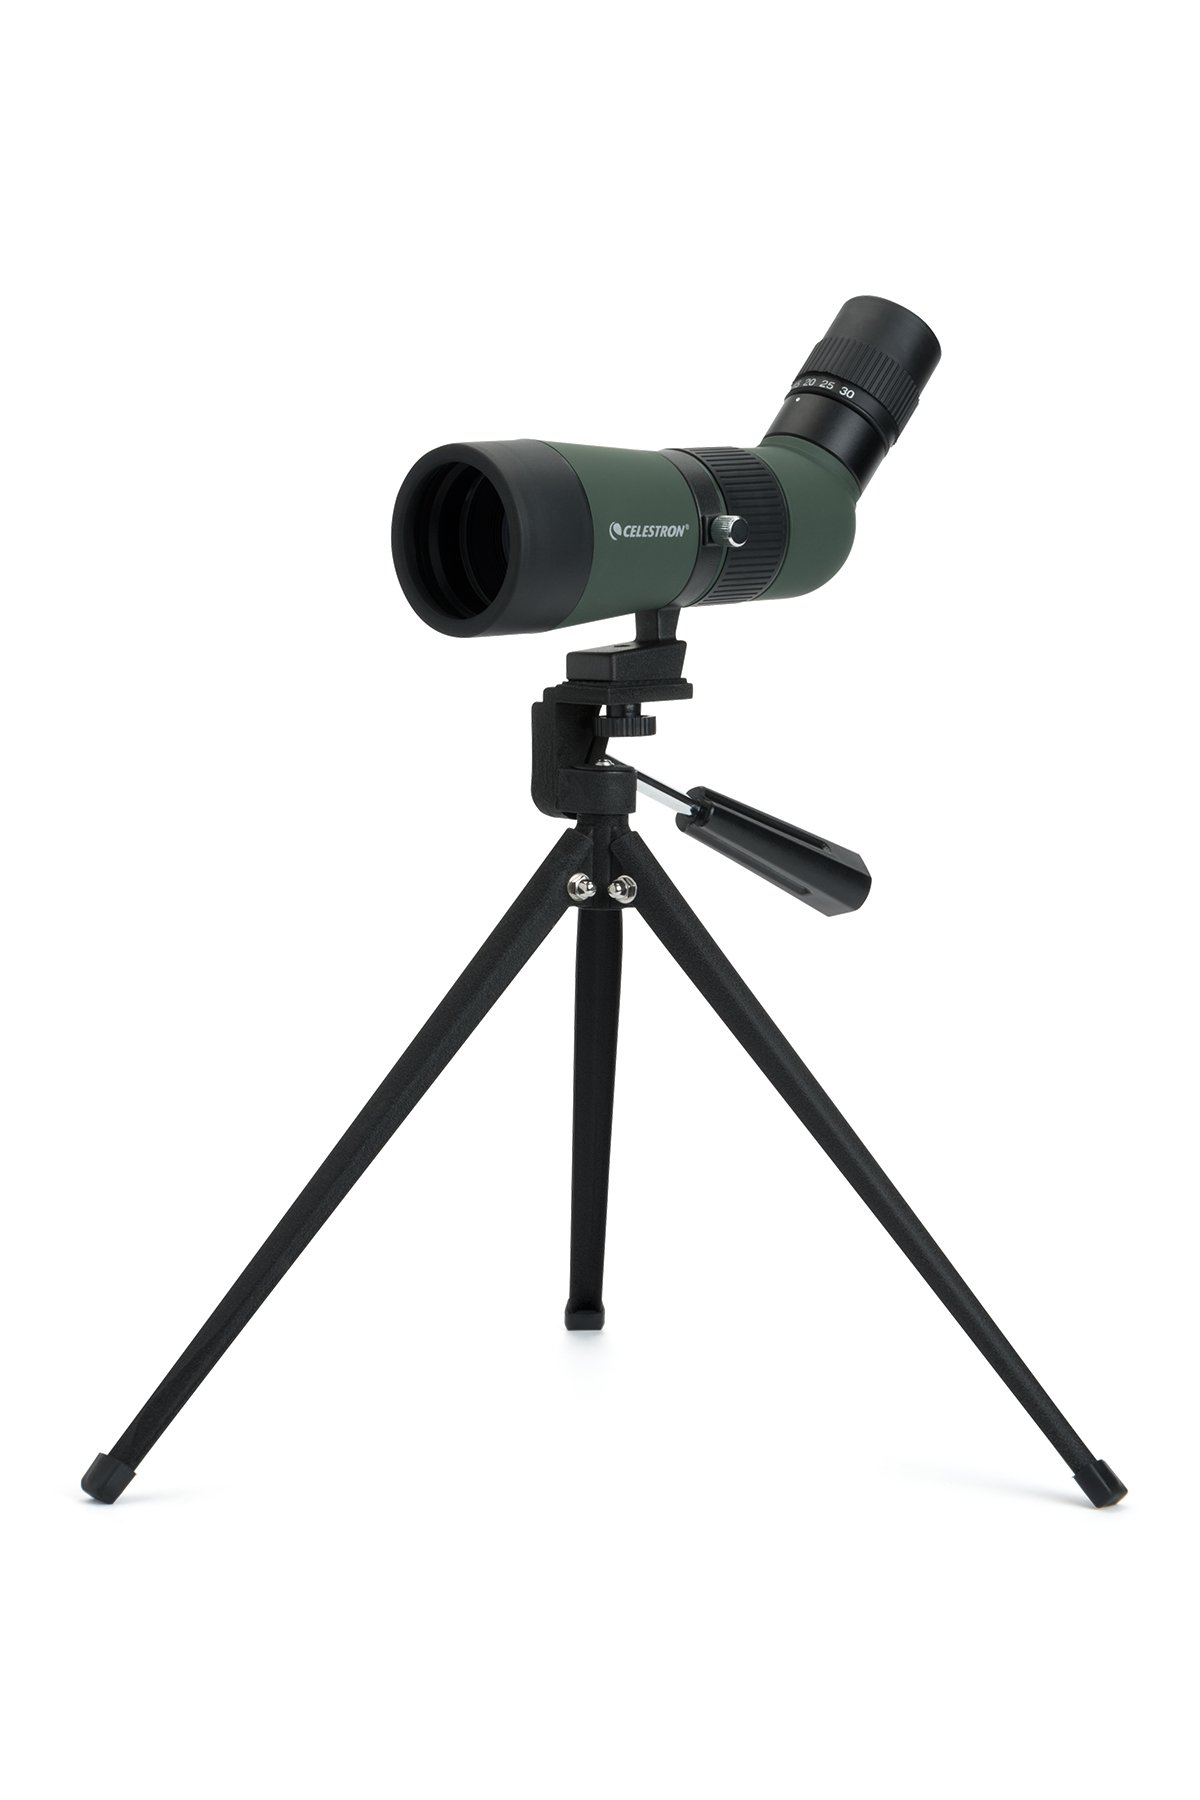 Celestron 52320 Landscout 10-30x50 Spotting Scope (Army Green) by Celestron